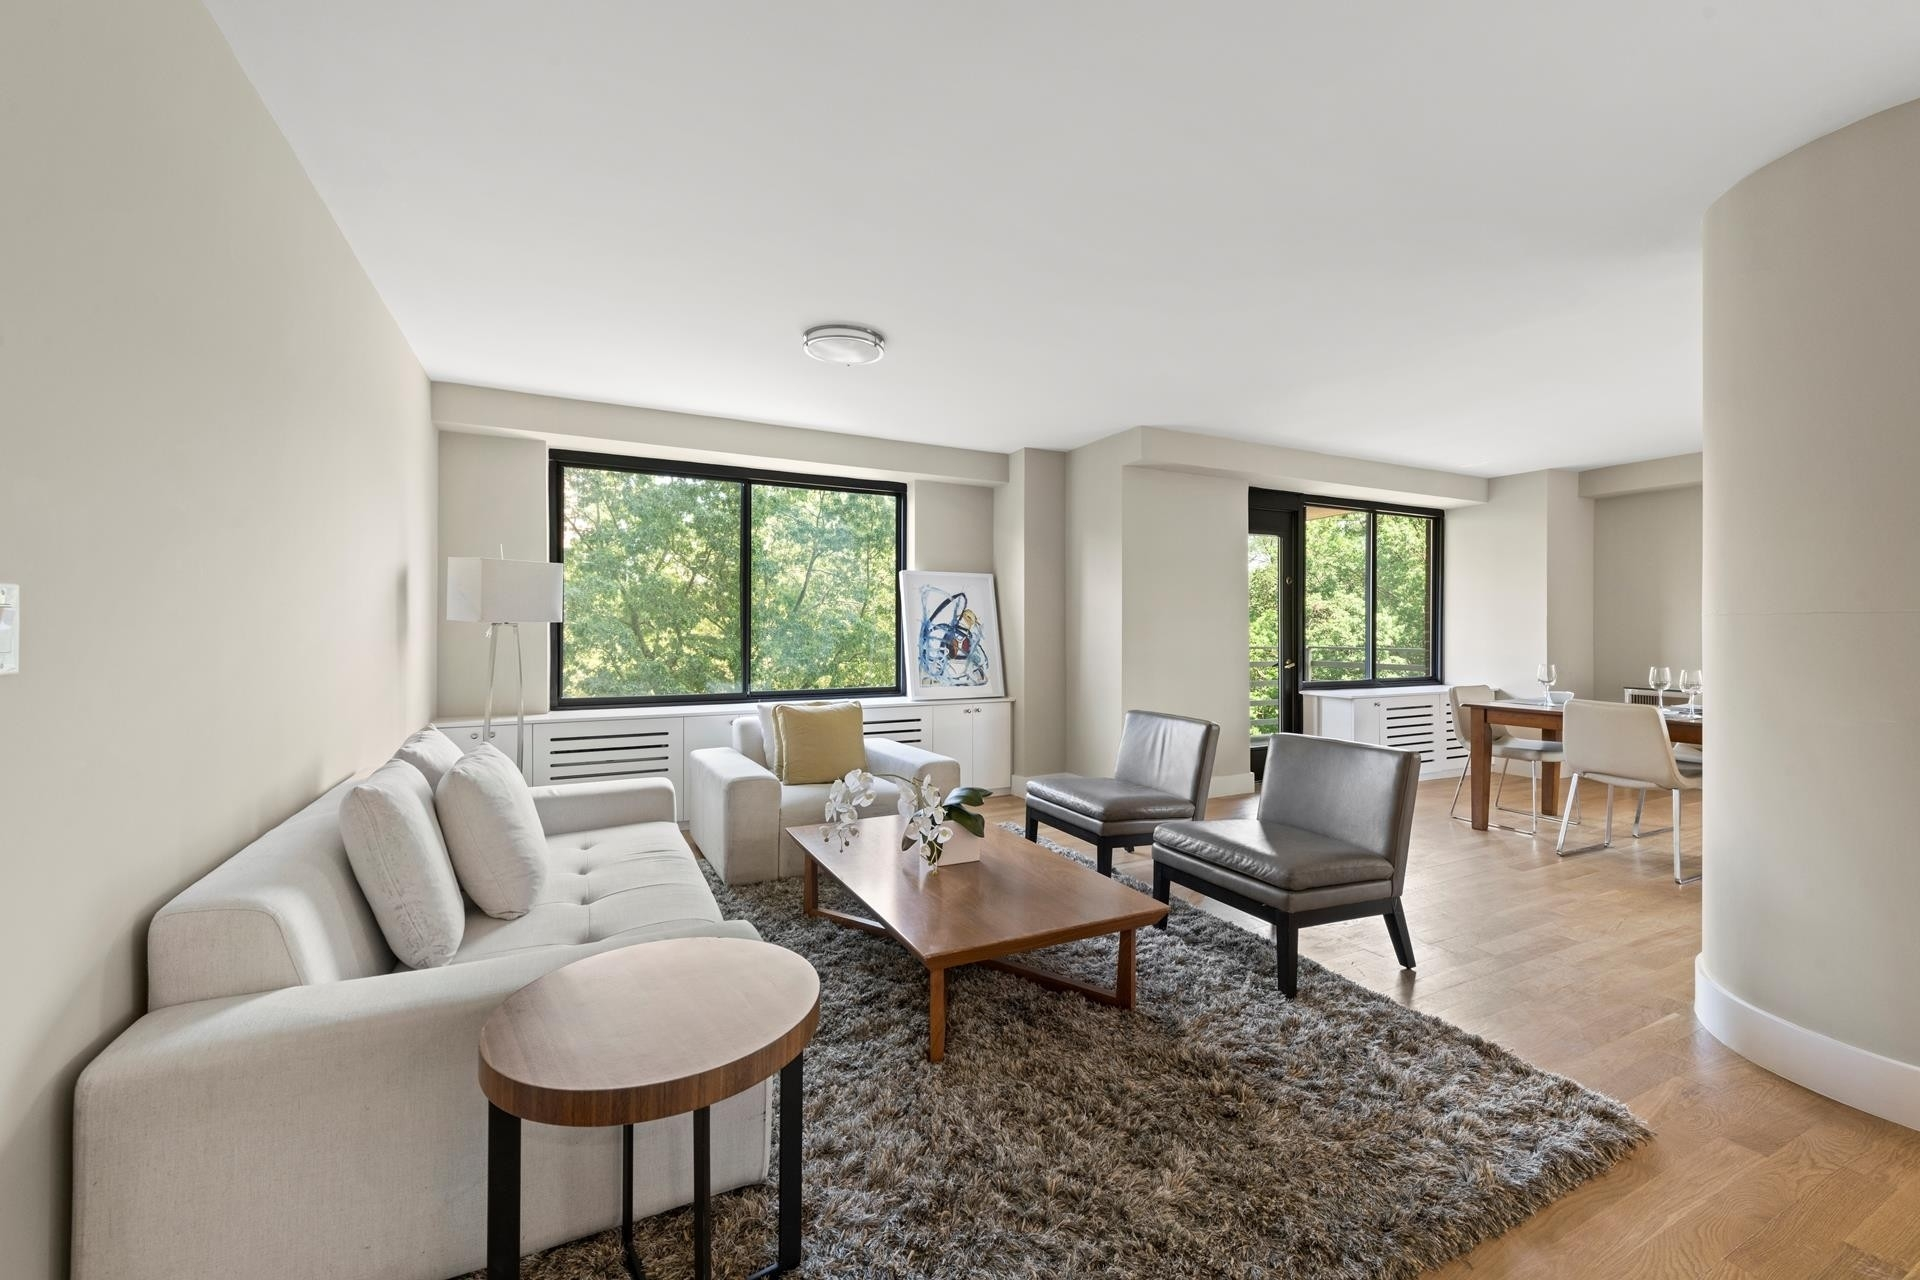 Property à 372 Central Park West, 5BC Manhattan Valley, New York, NY 10025